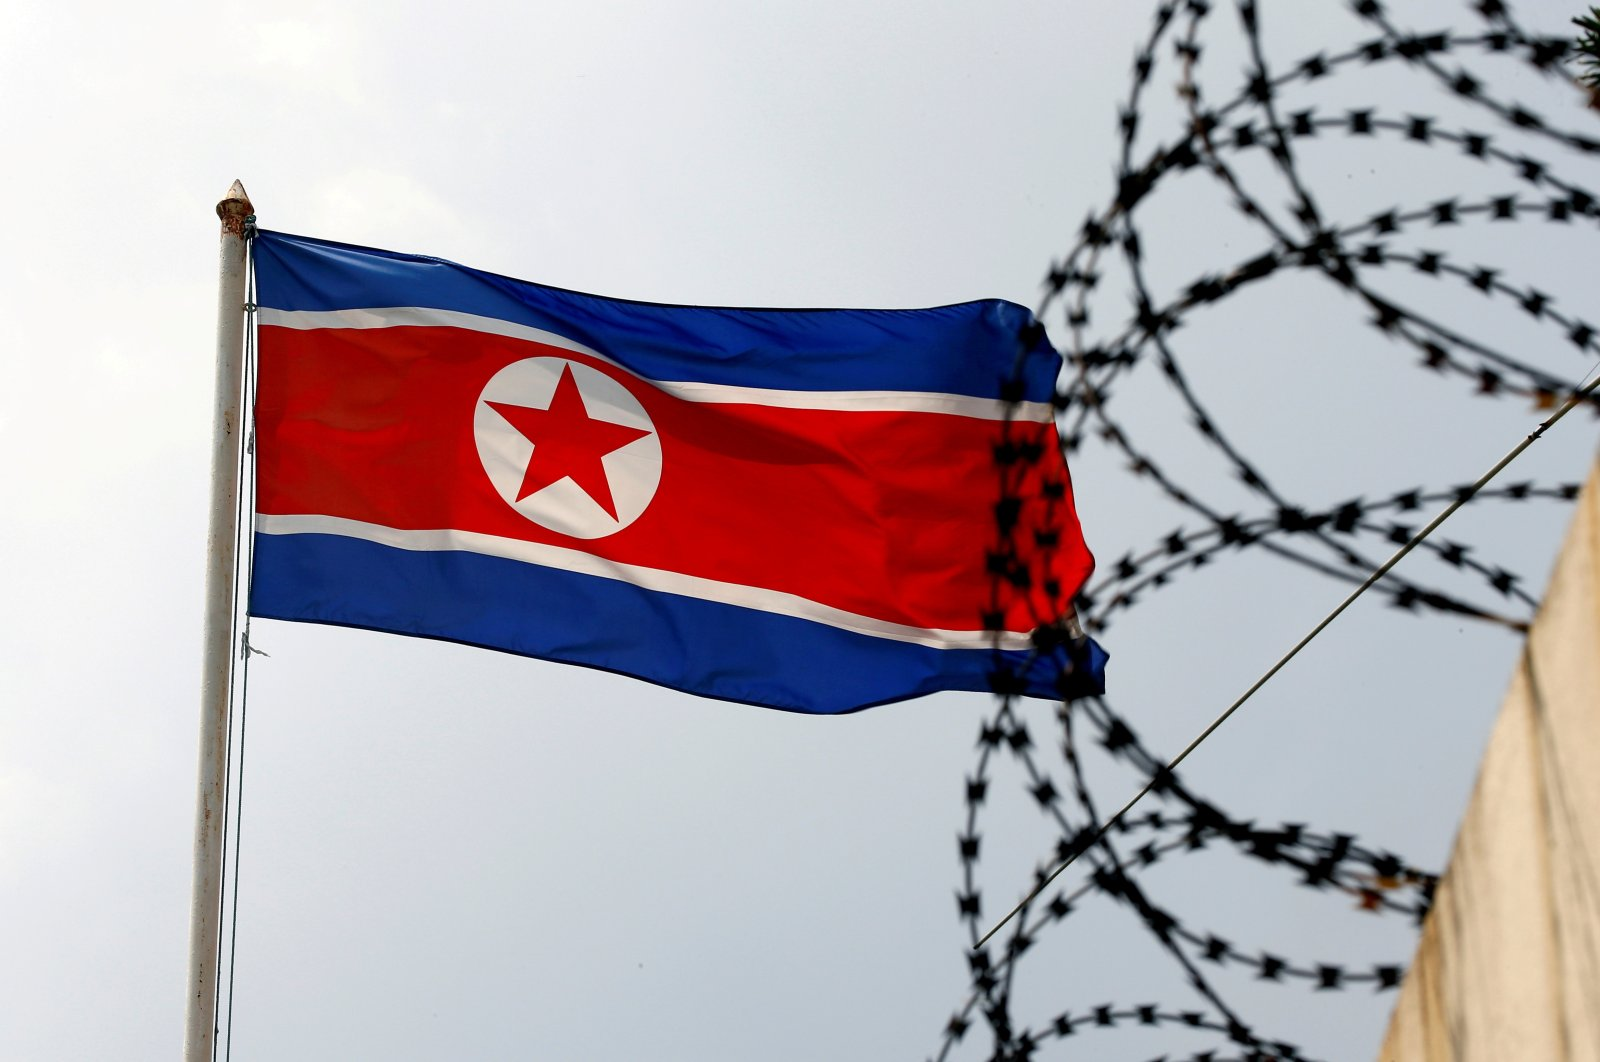 North Korea's flag flutters next to barbed wire at the North Korean Embassy in Kuala Lumpur, Malaysia, March 9, 2017. (Reuters Photo)